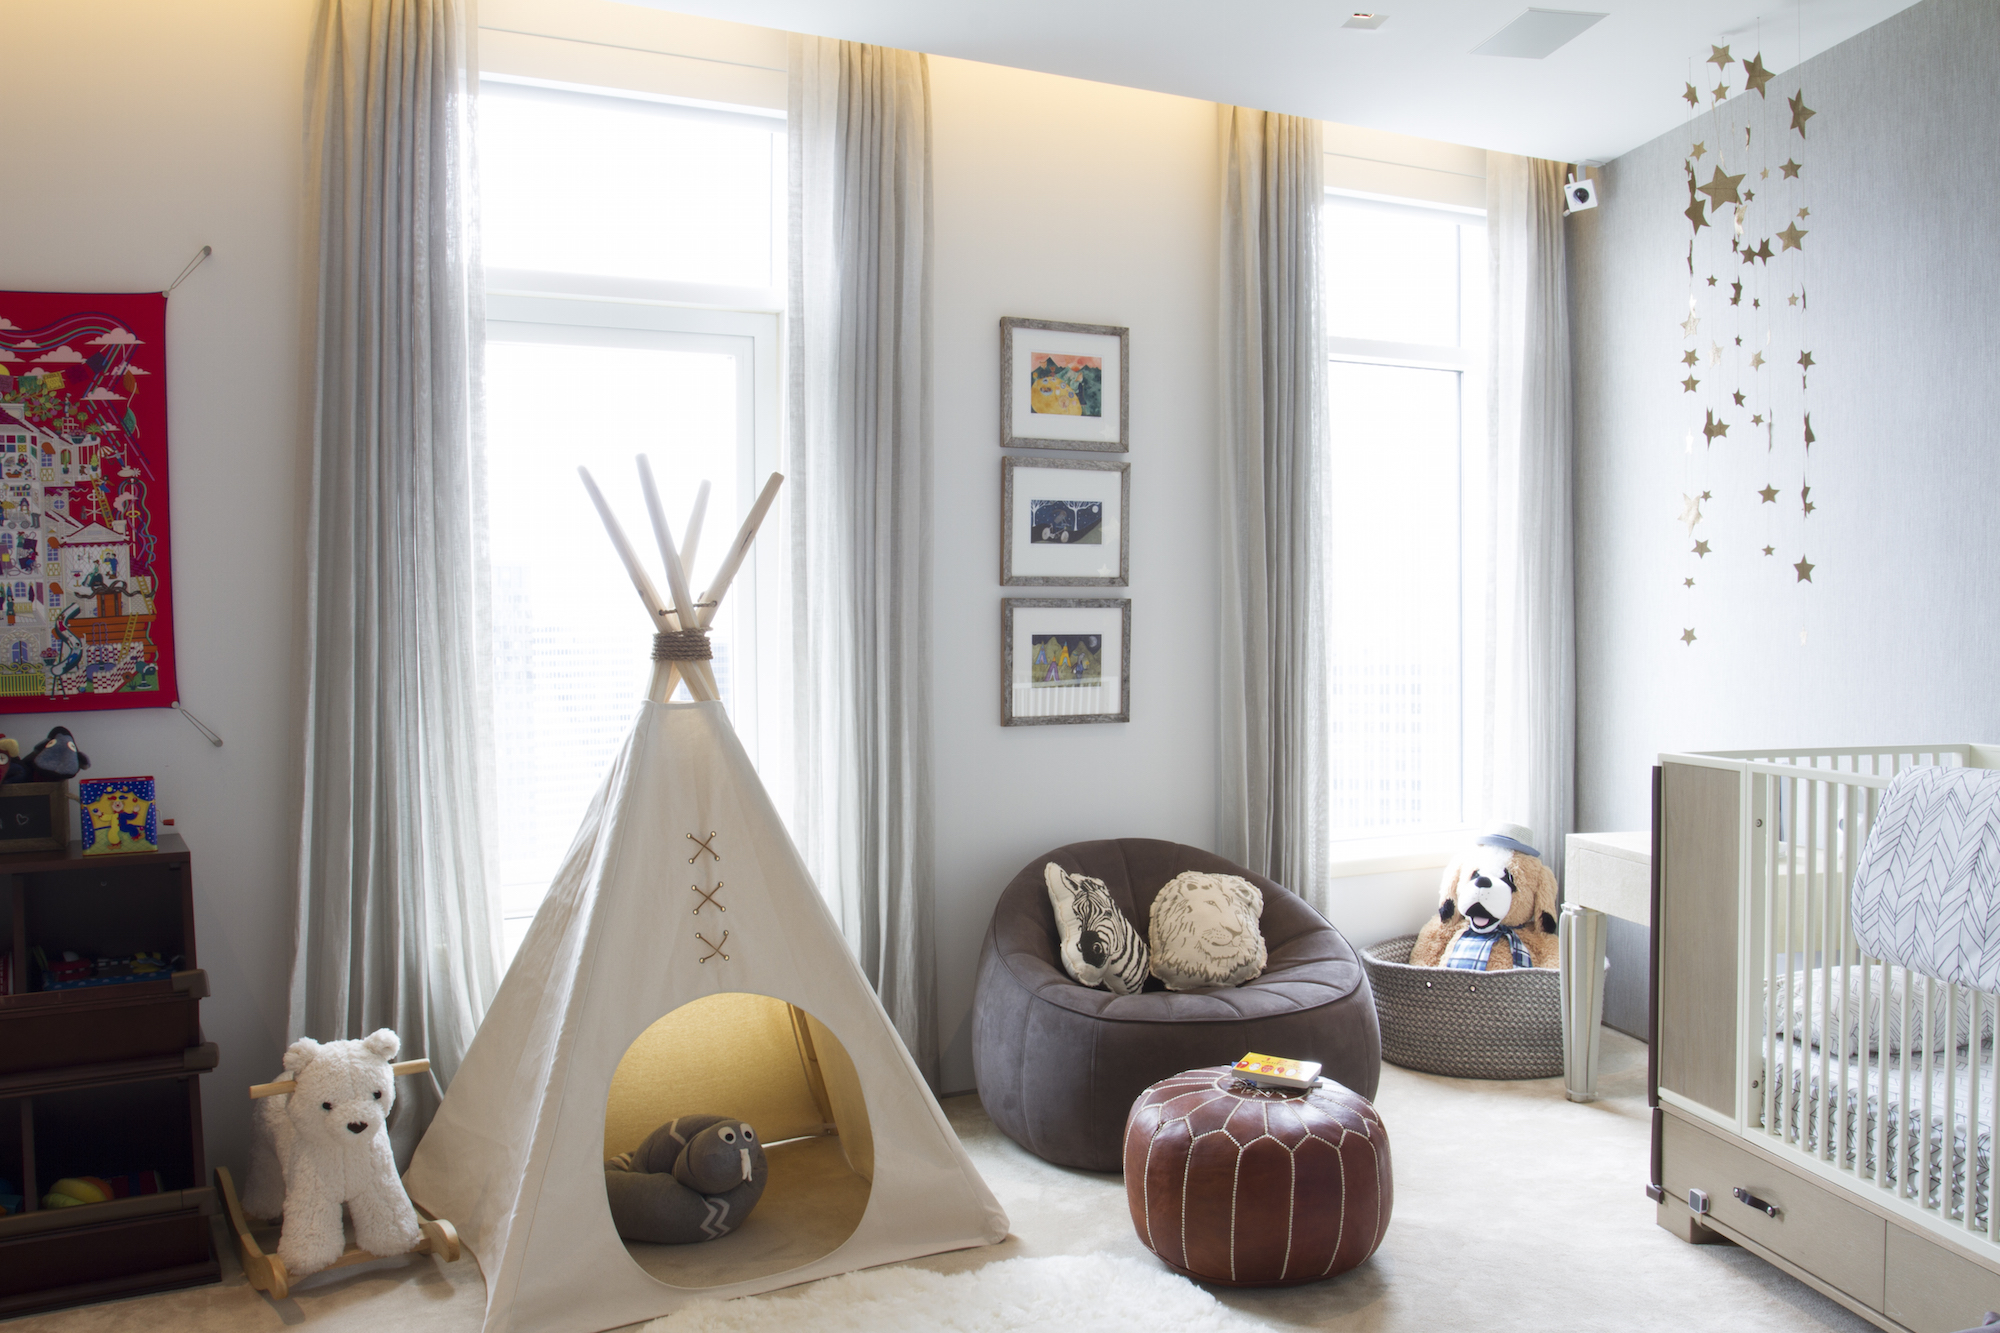 A playful baby boy nursery complete with teepee, stuffed animals & creative shelving. Designed by Havenly.